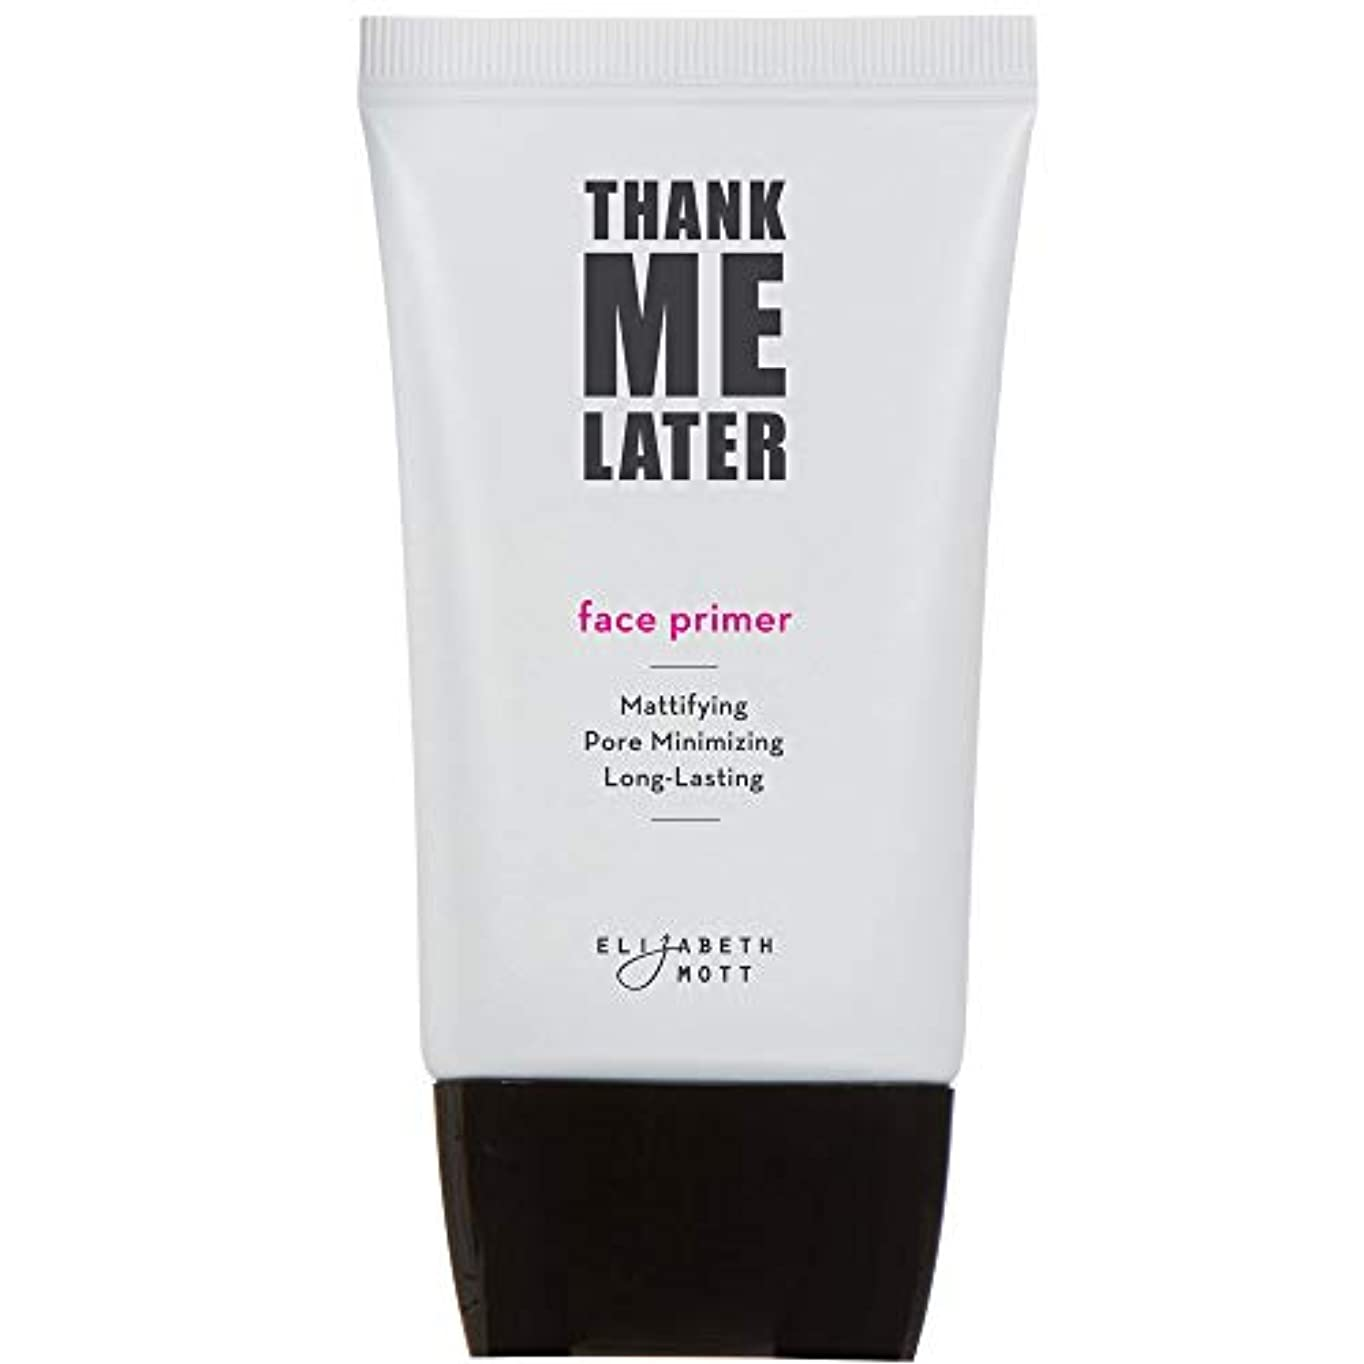 ラベルトークン唇Thank Me Later Primer. Paraben-free and Cruelty Free. … Face Primer (30G) フェイスプライマー(下地)